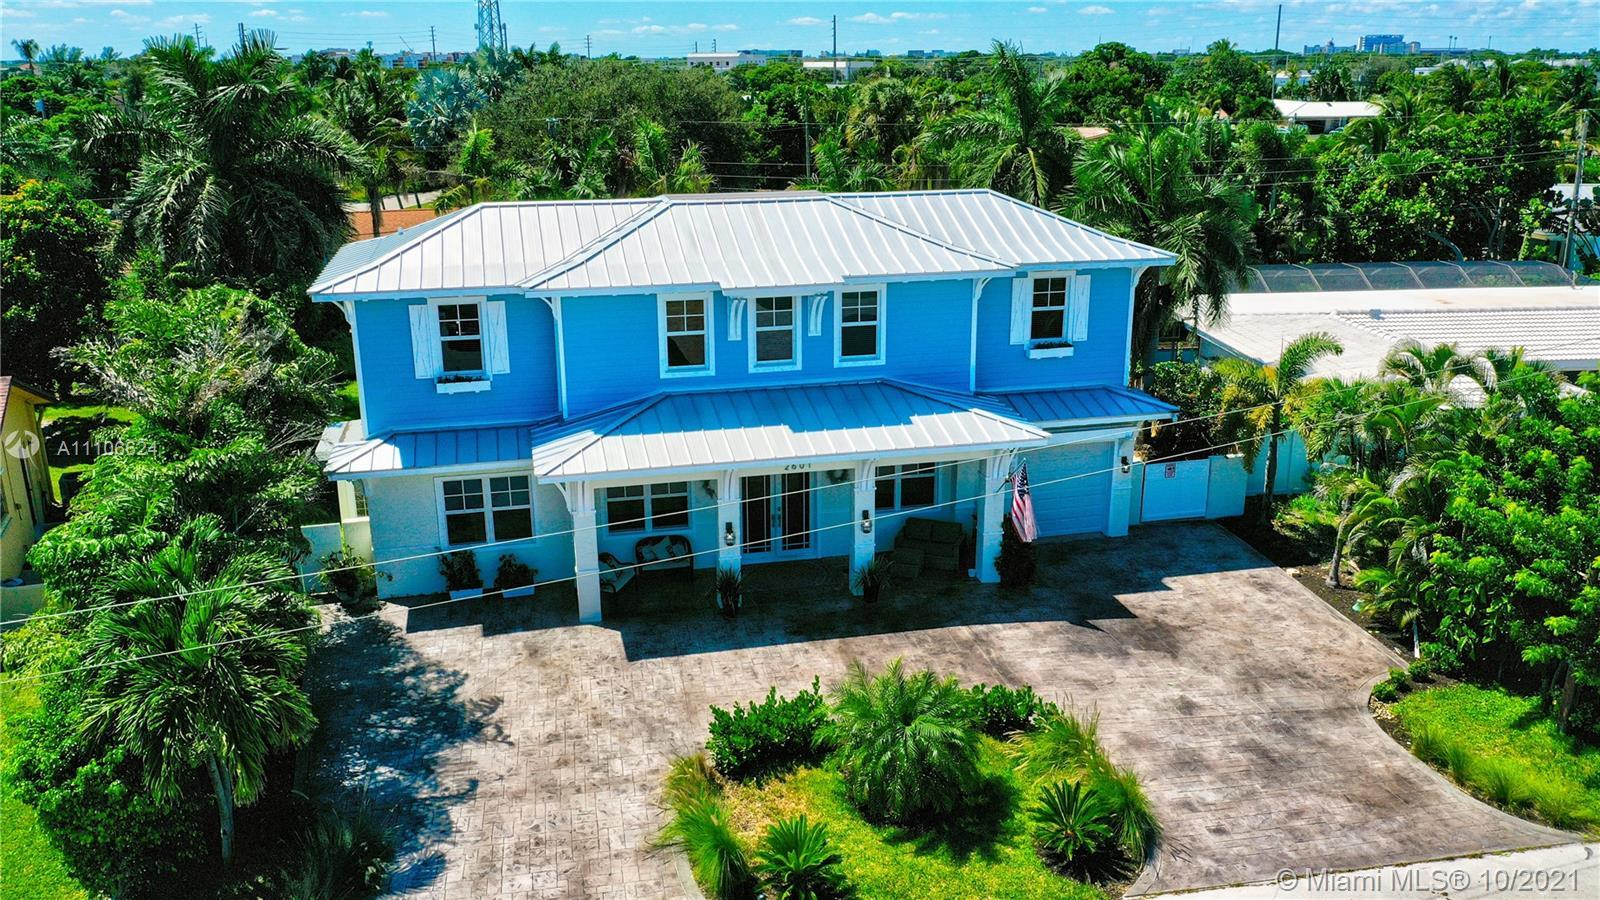 Custom Key West Style 2 story home with Garage. Highly Upgraded & expanded with new 2nd floor in 201